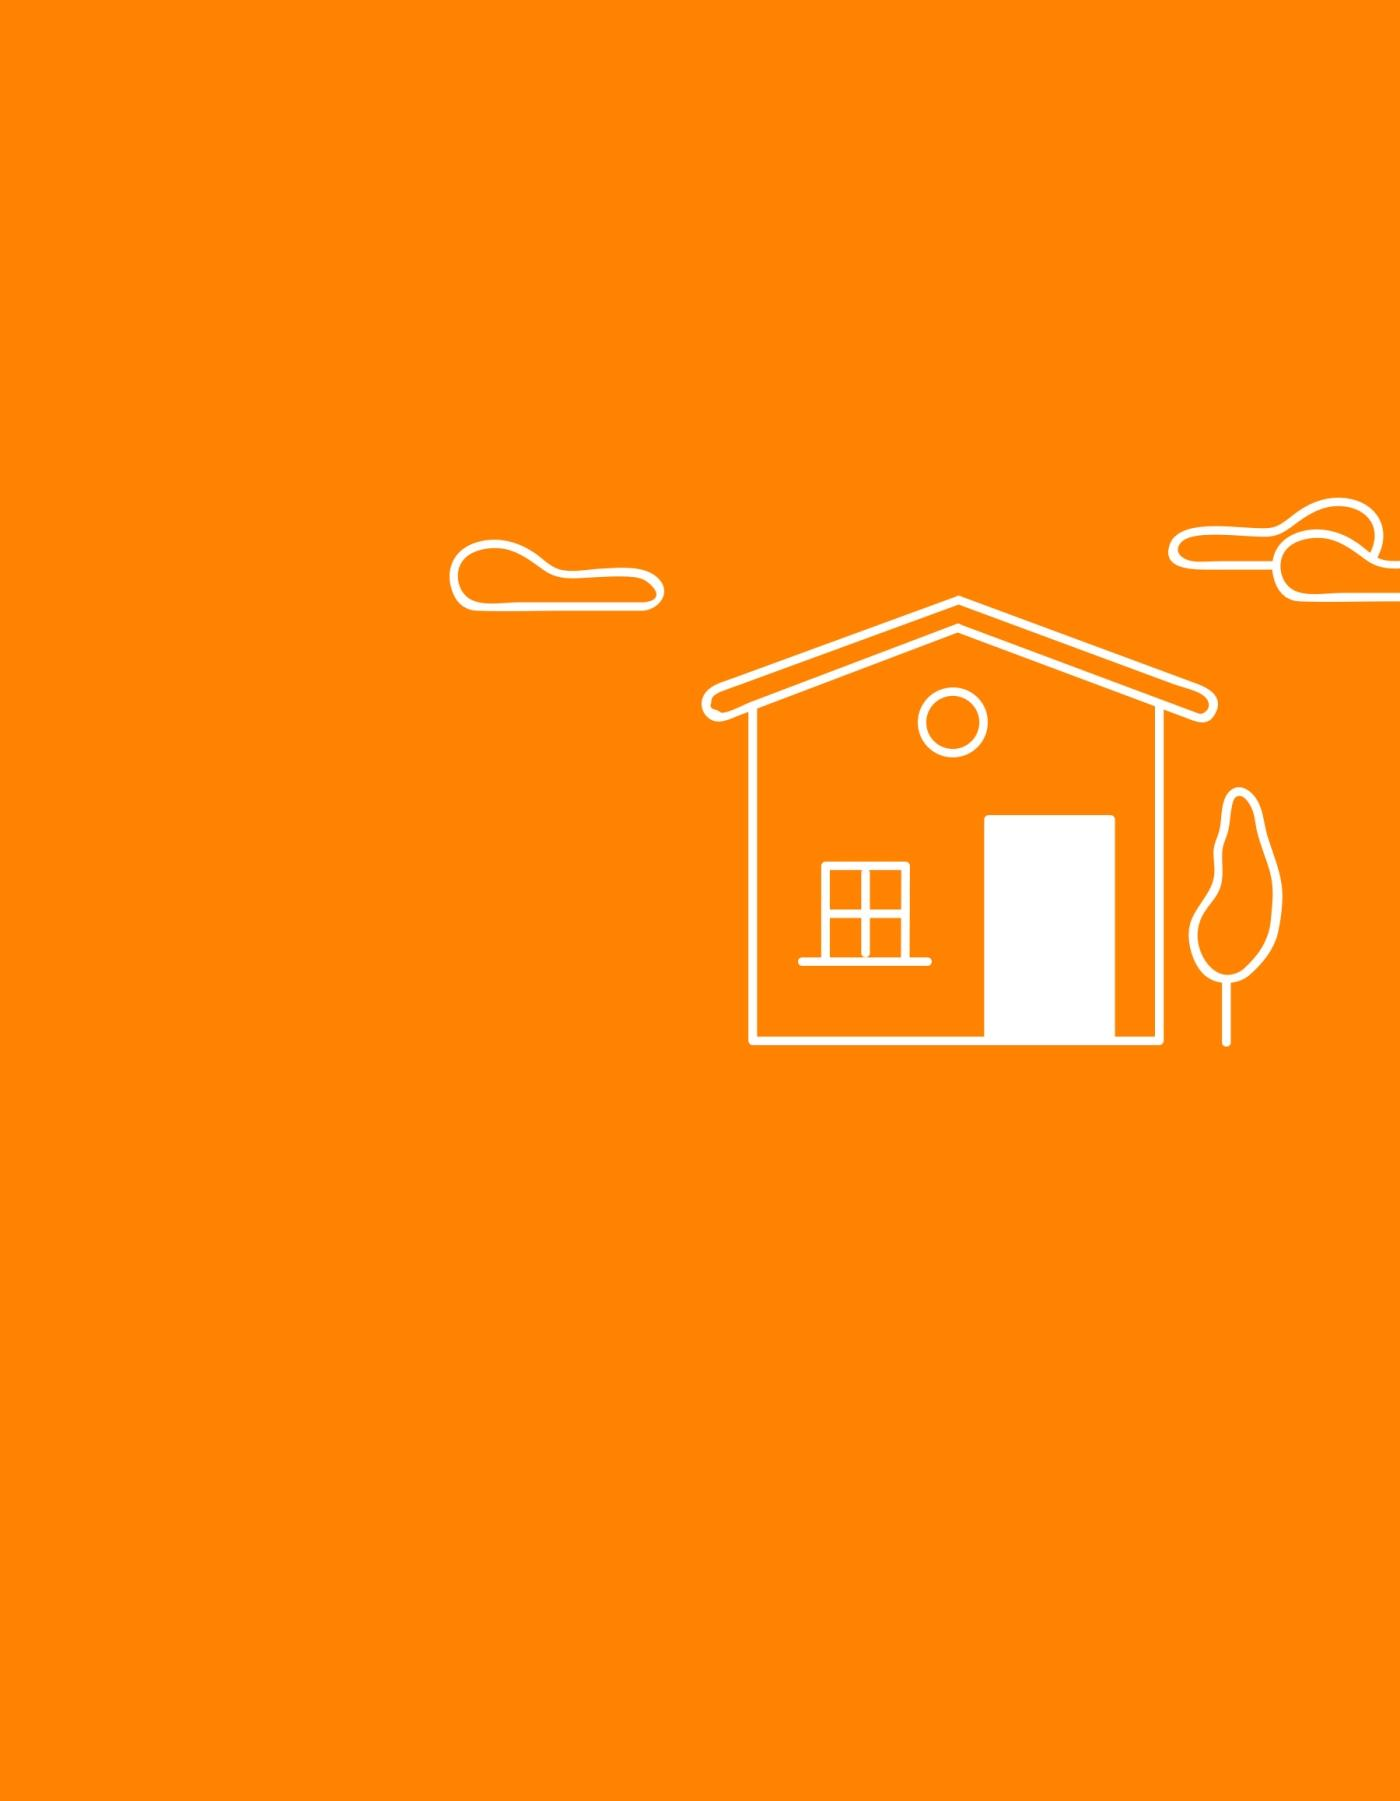 orange background with house and clouds illustration